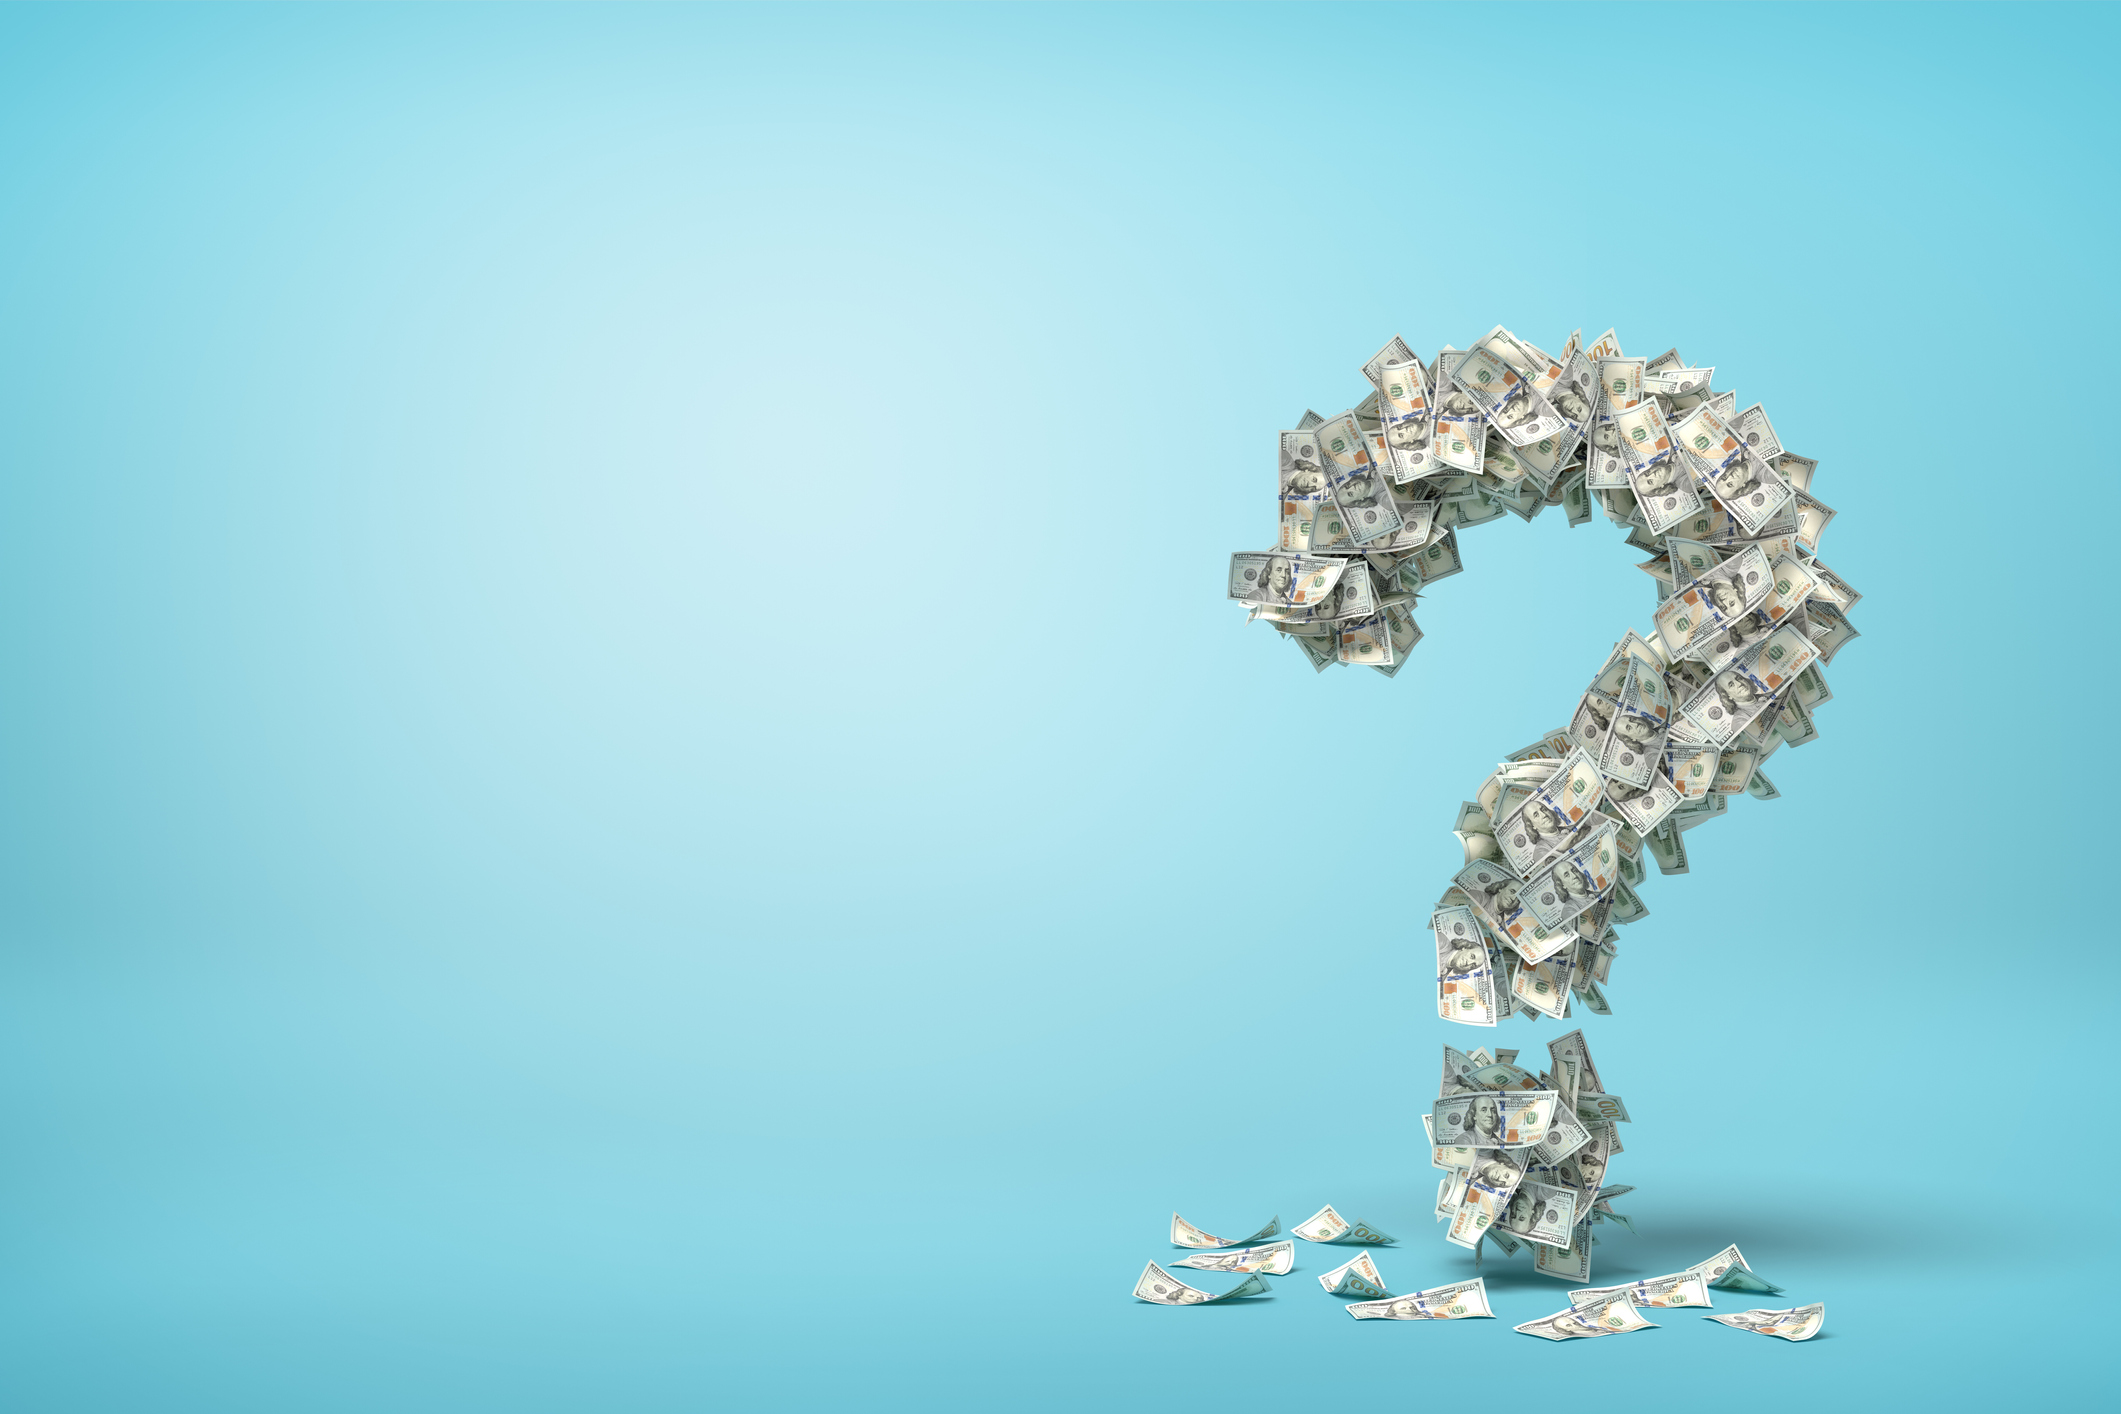 3d rendering of question mark made up of dollar banknotes on blue background. Banking and finance. Business success. Management and production.